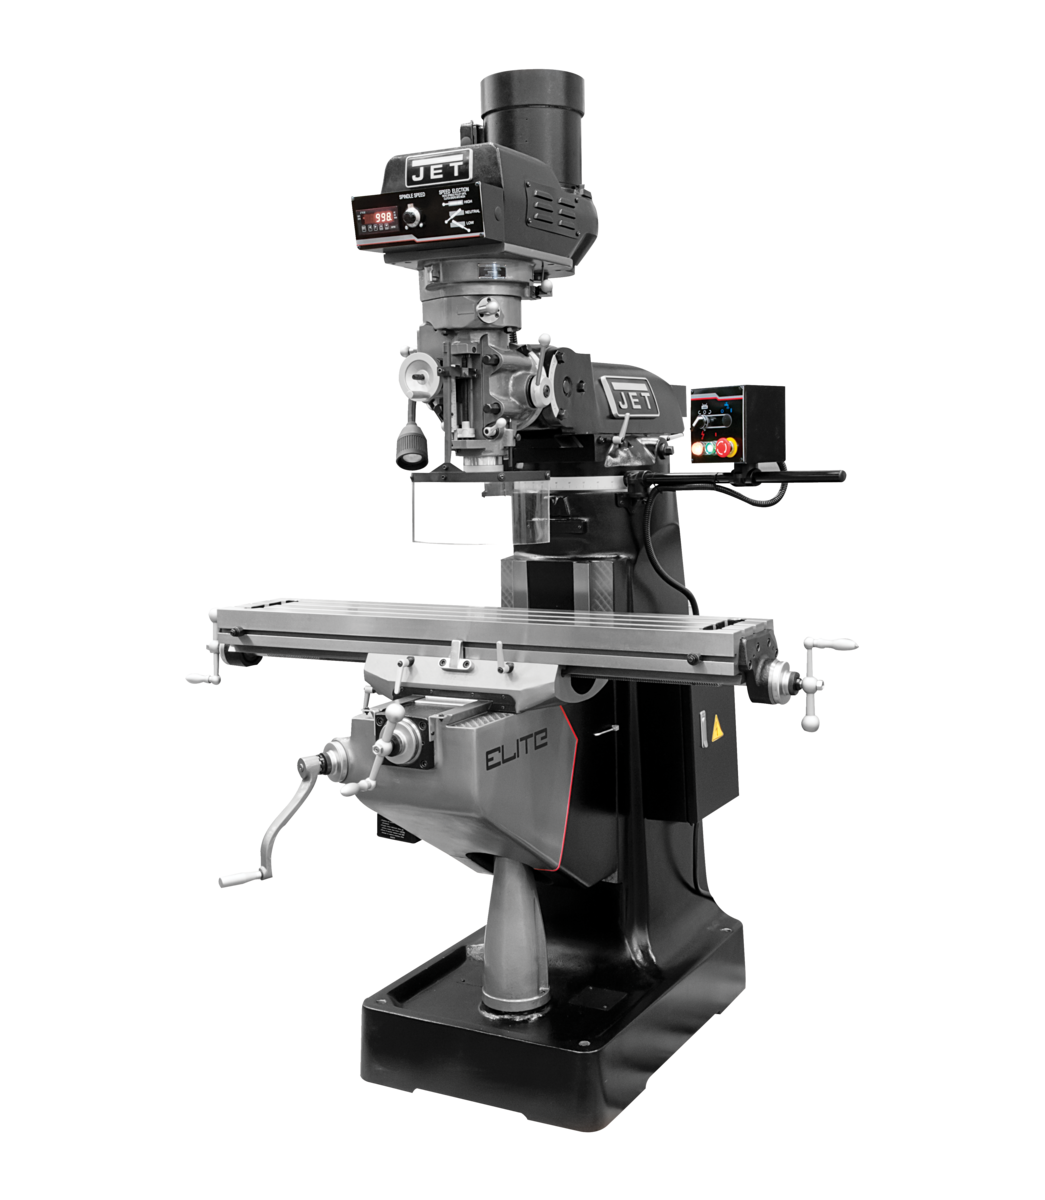 EVS-949 Mill with 3-Axis ACU-RITE 303 (Knee) DRO and Servo X-Axis Powerfeed and USA Air Powered Draw Bar